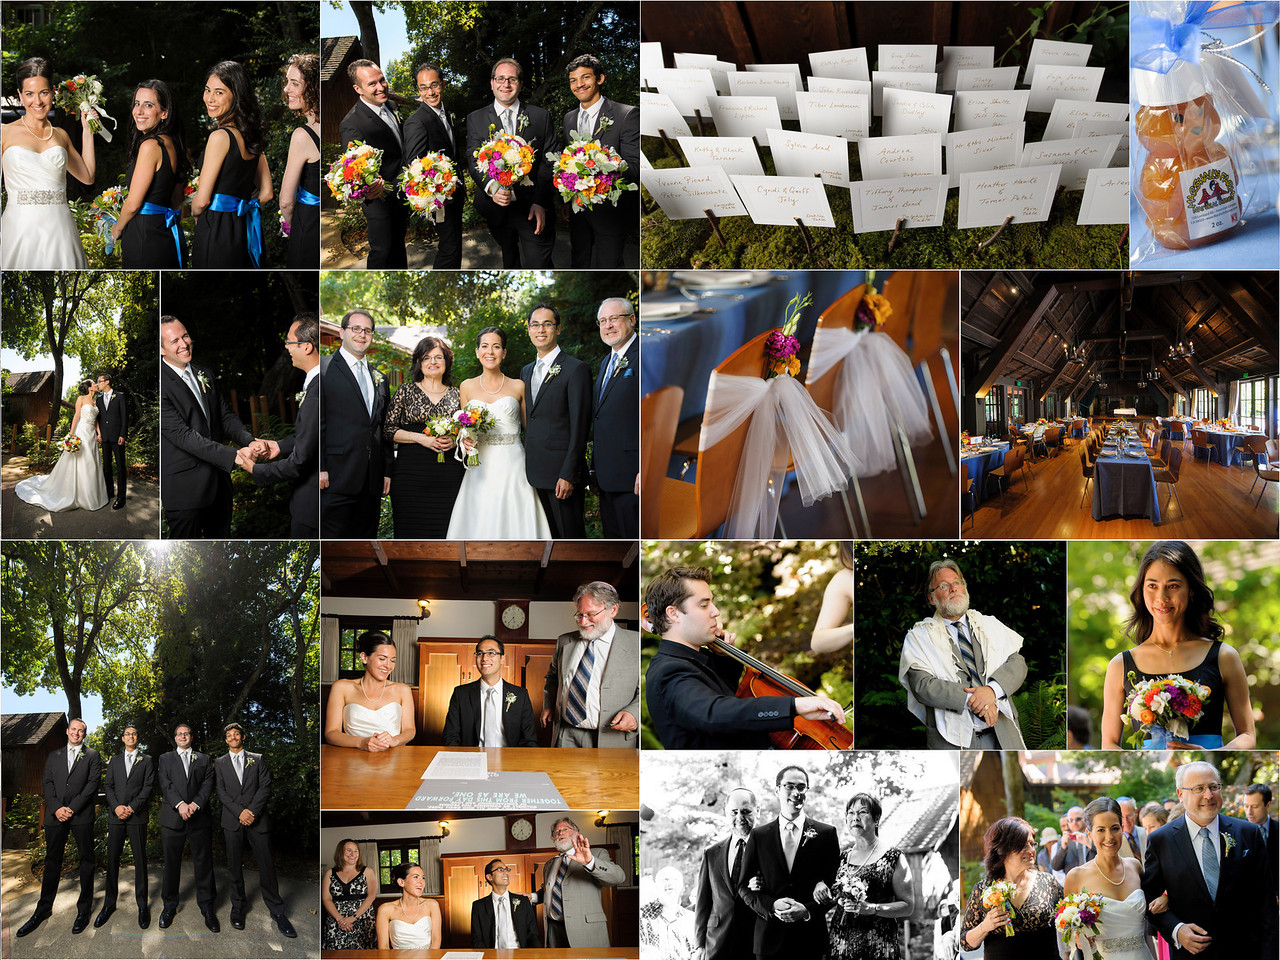 Alyssa_and_Paul_Wedding_Photography_4x6_Photo_Board_04